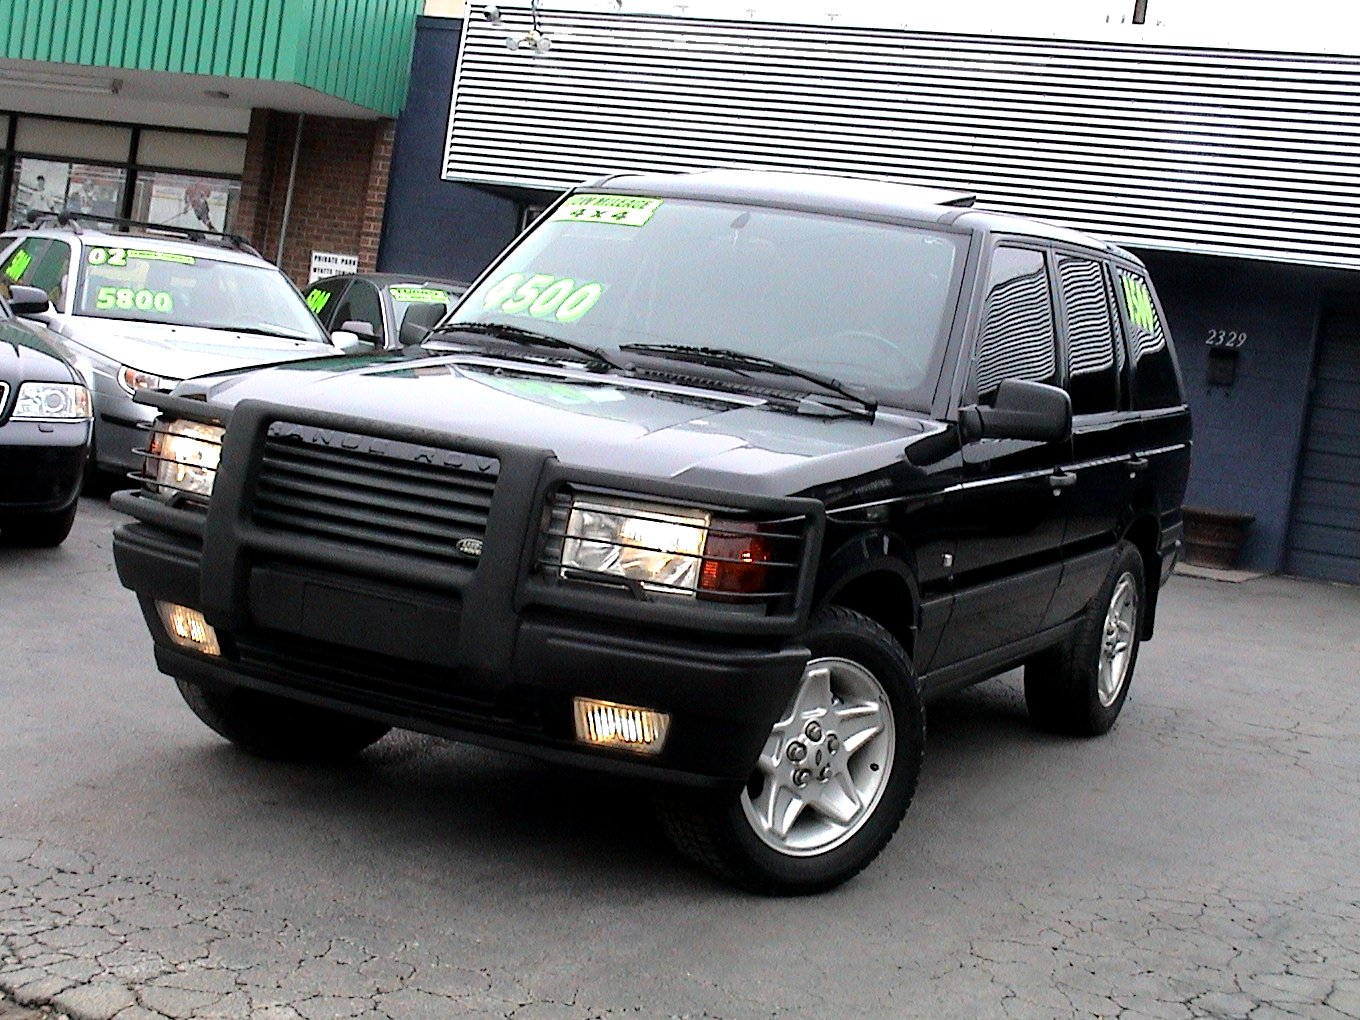 Who Owns Range Rover >> 1996 Land Rover Range Rover - Pictures - CarGurus